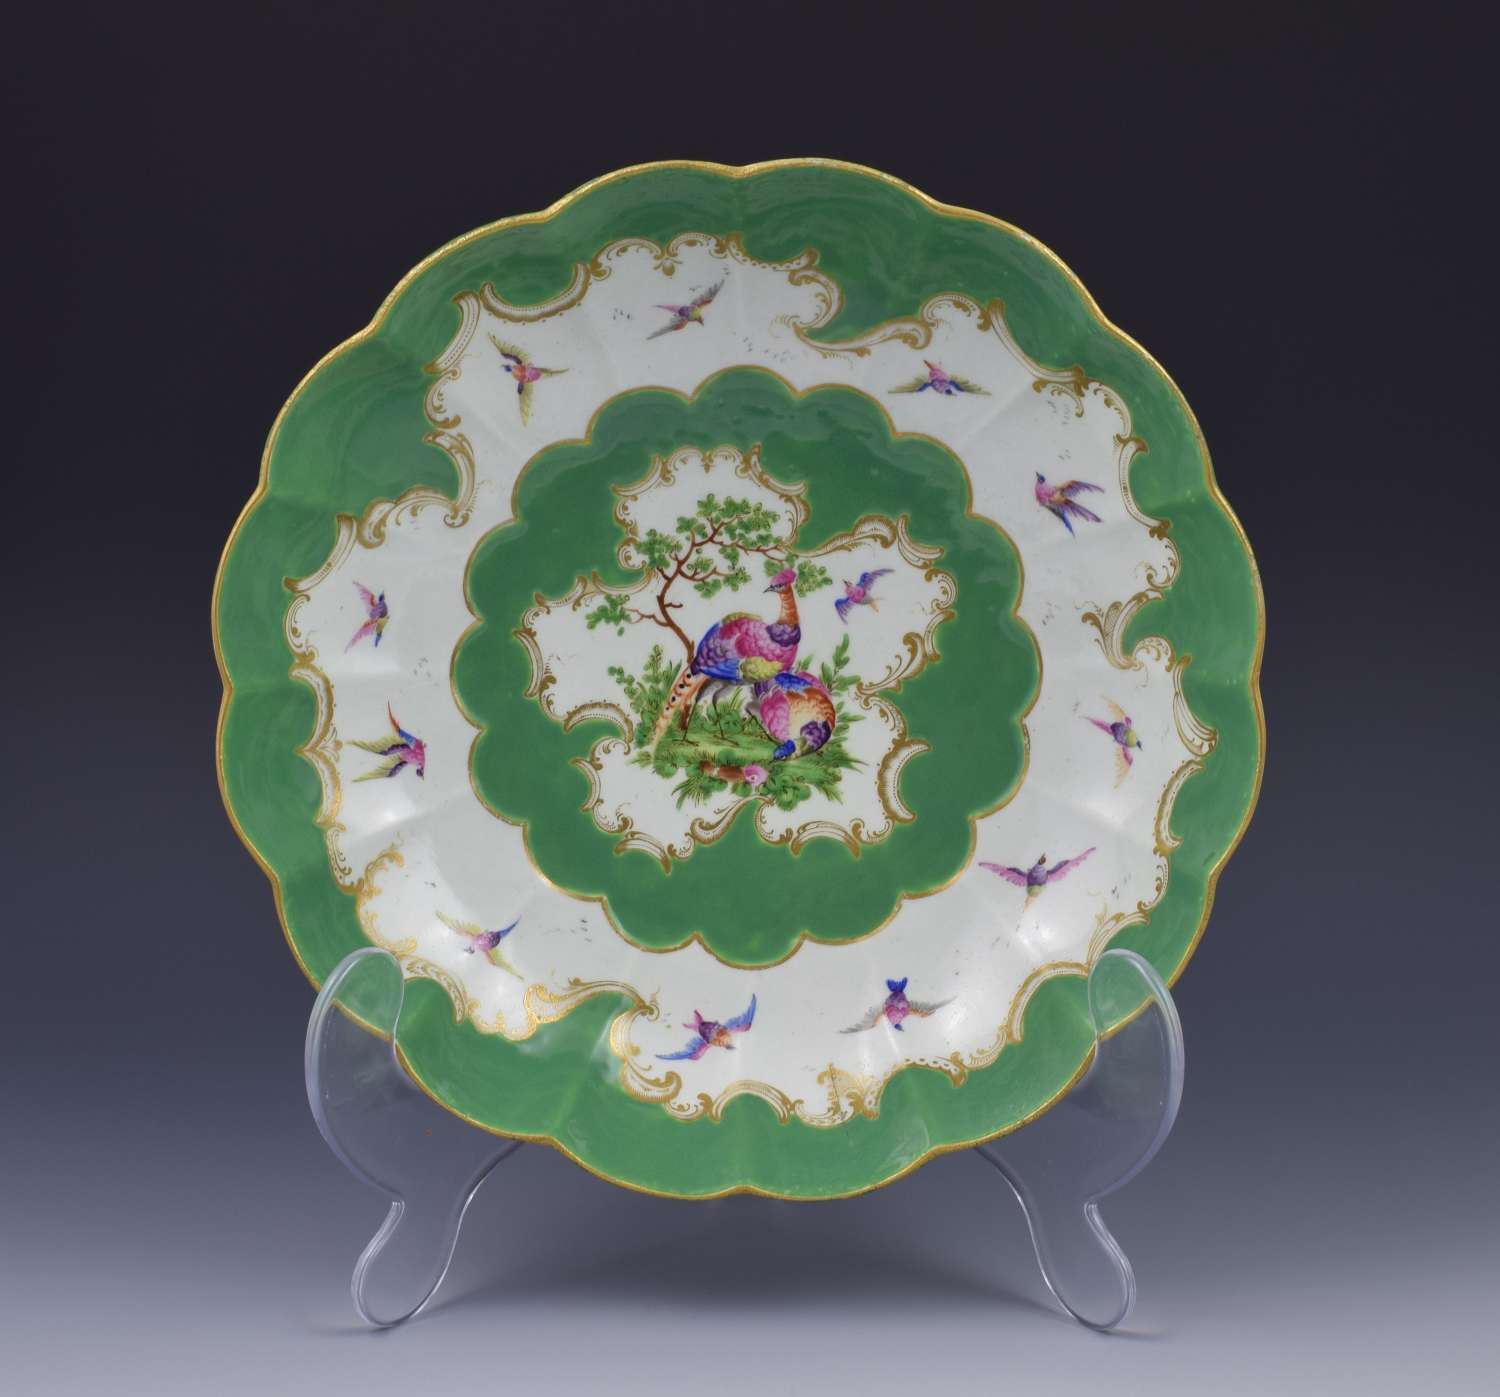 Large Redecorated First Period Worcester Green Junket Bowl